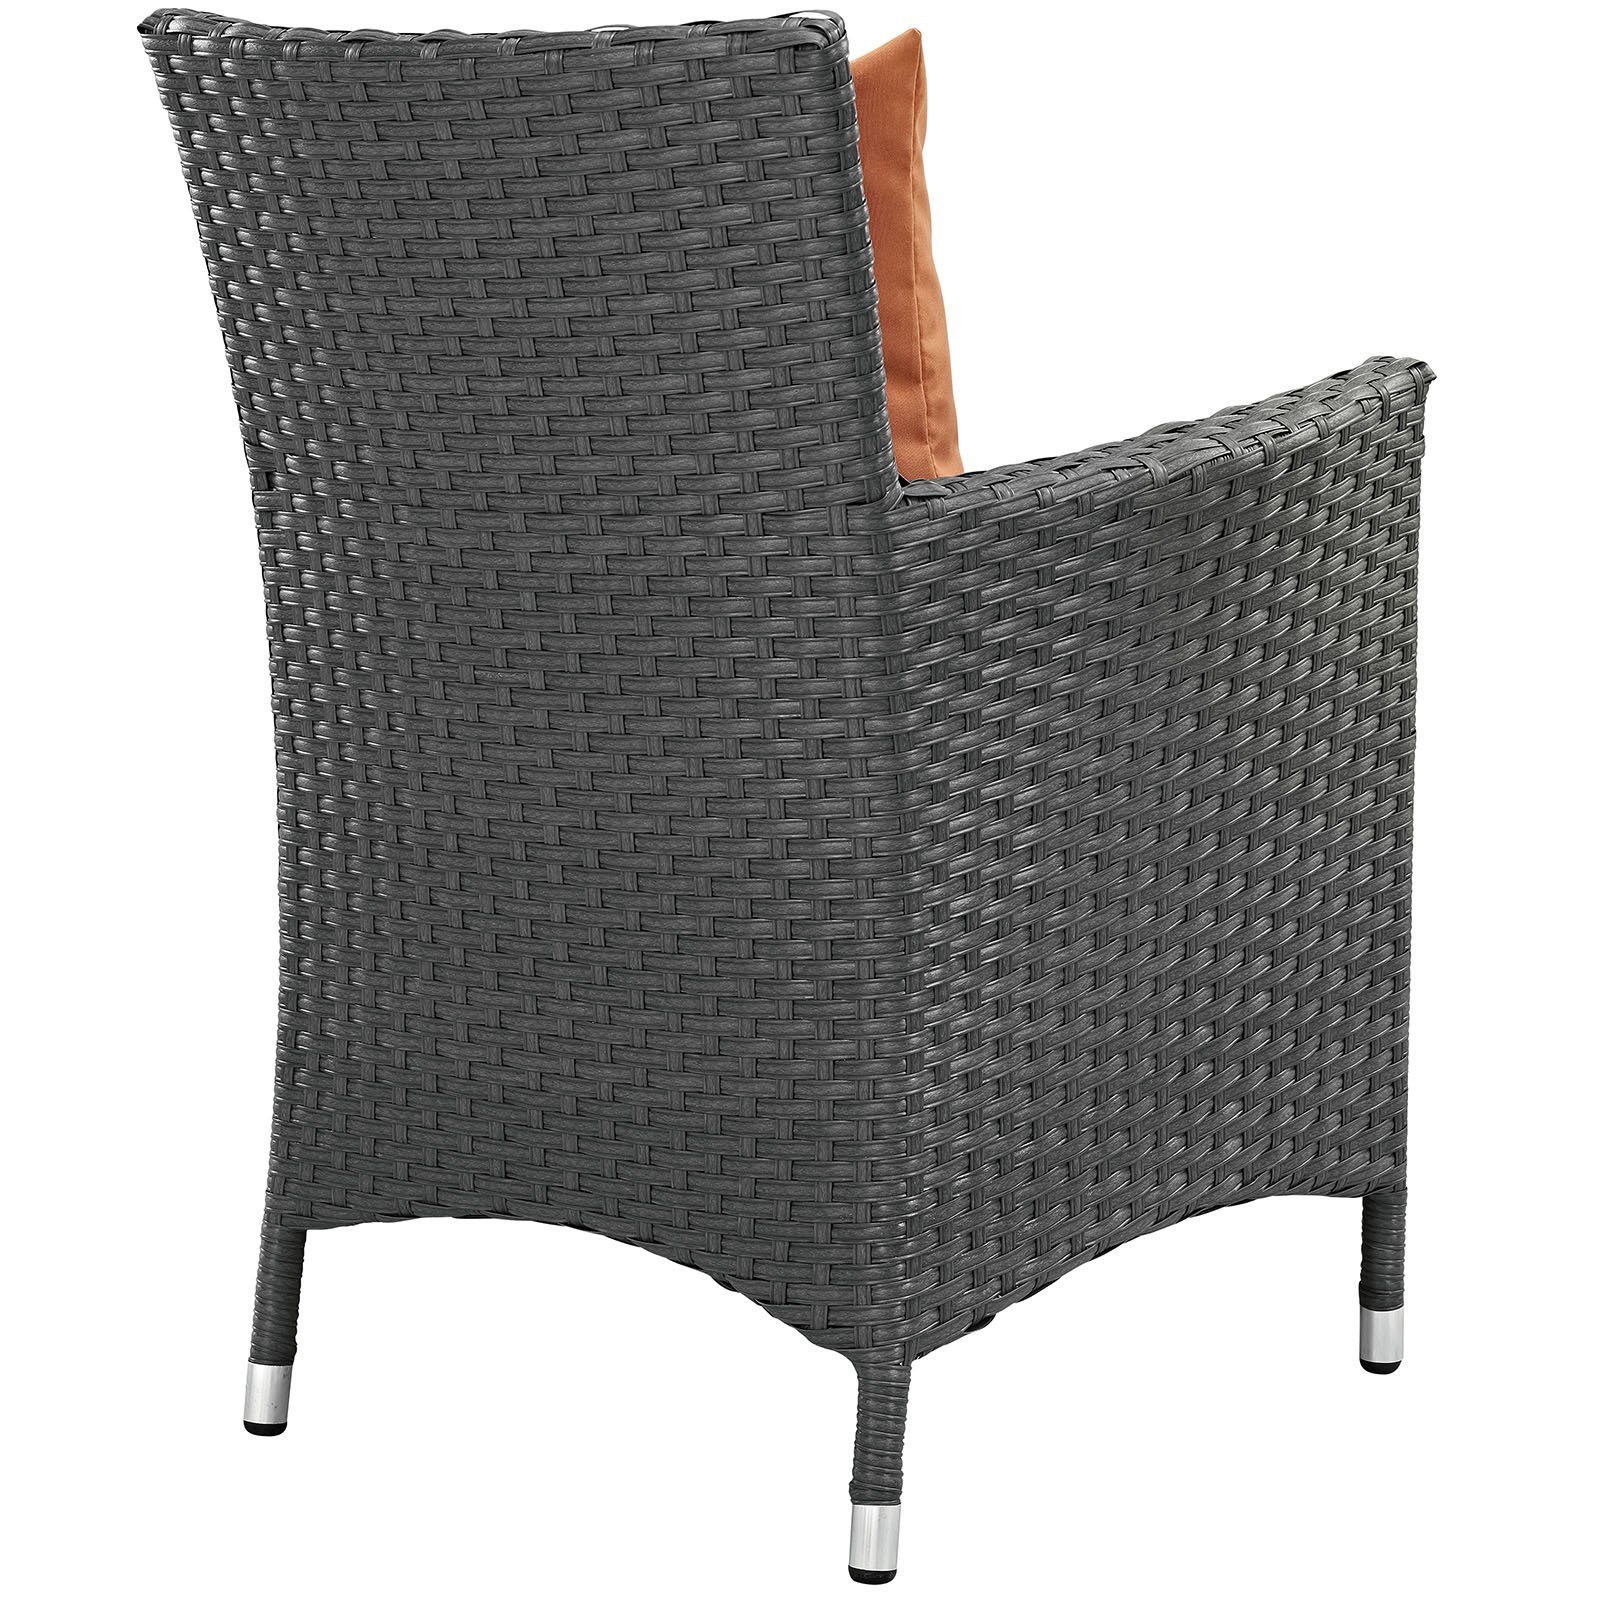 Modway LexMod Sojourn Dining Outdoor Patio Armchair, Canvas Tuscan by Modway (Image #3)